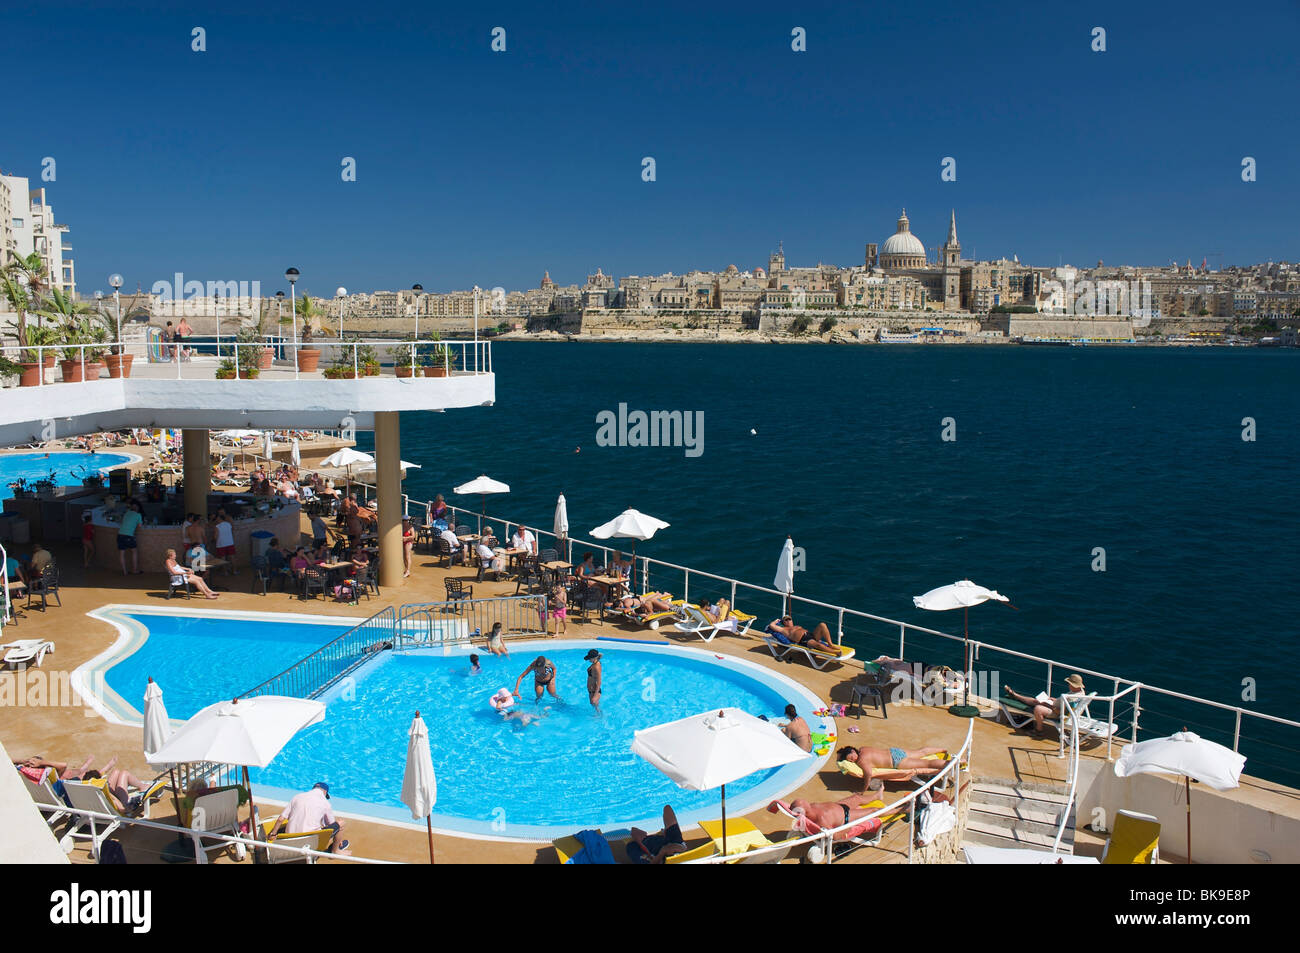 View from a hotel pool in Sliema on Valletta, Malta, Europe Stock Photo